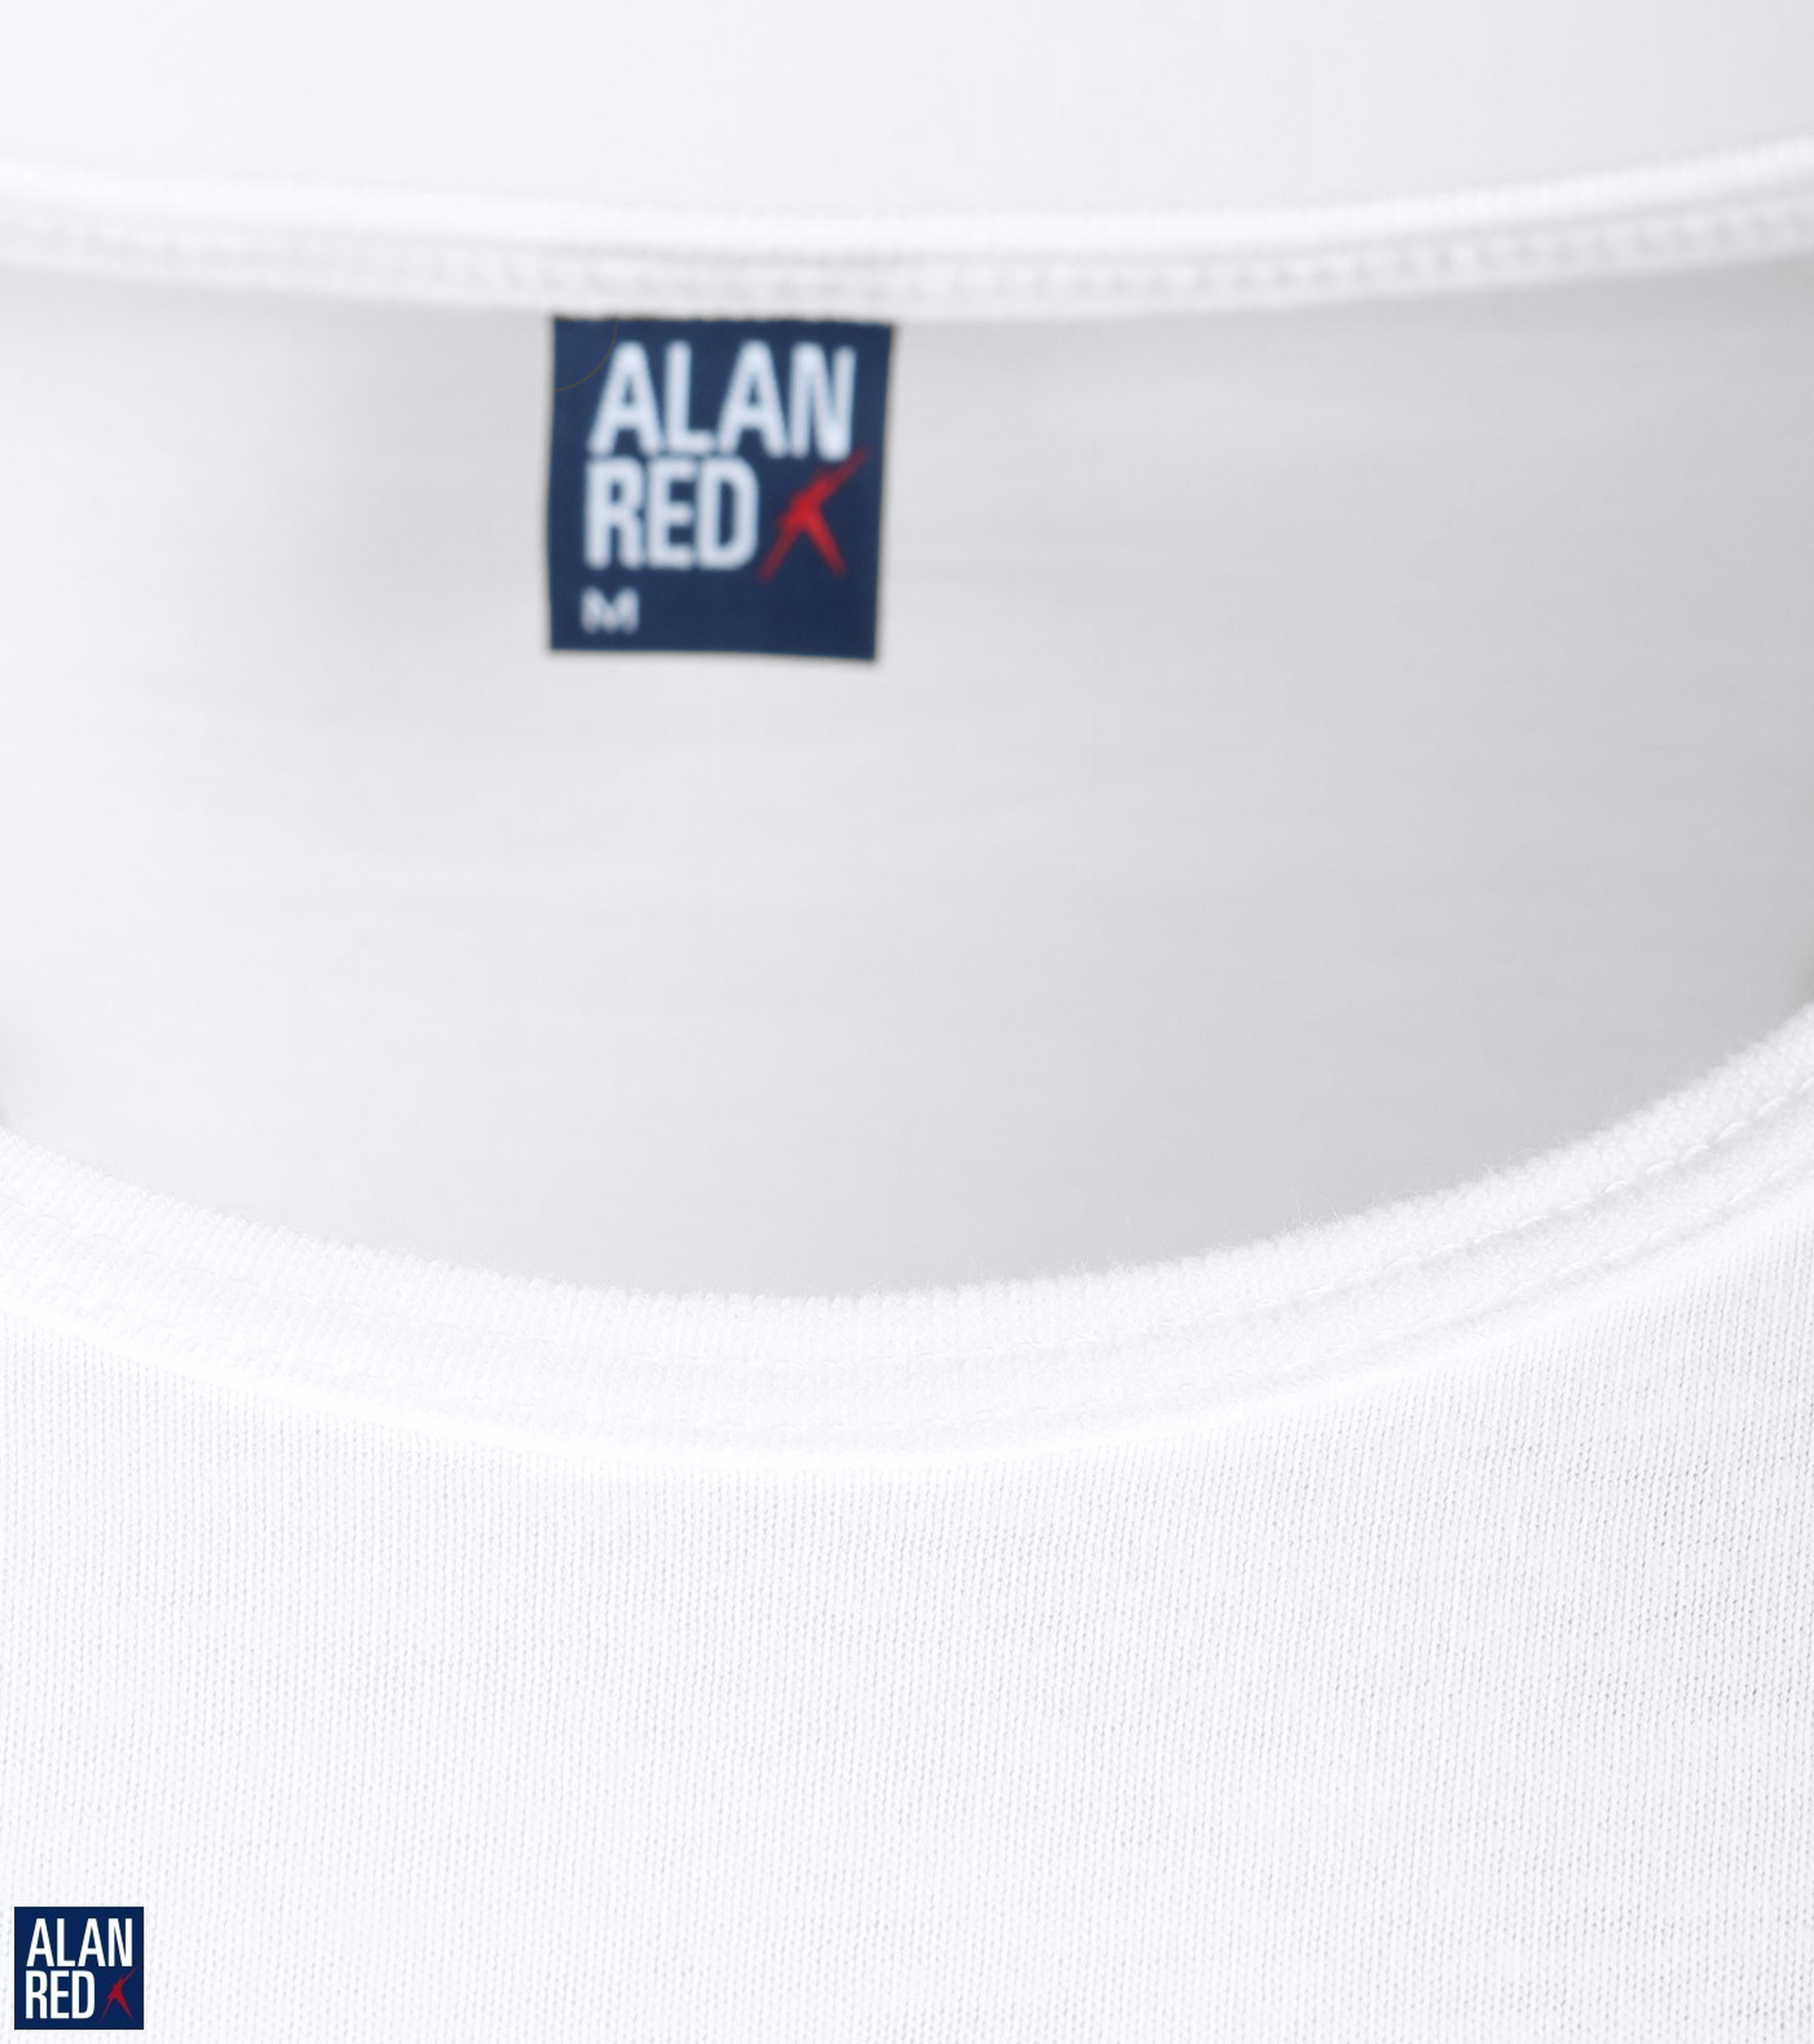 Alan Red Aanbieding Derby O-Hals T-shirts Wit (6Pack) foto 1